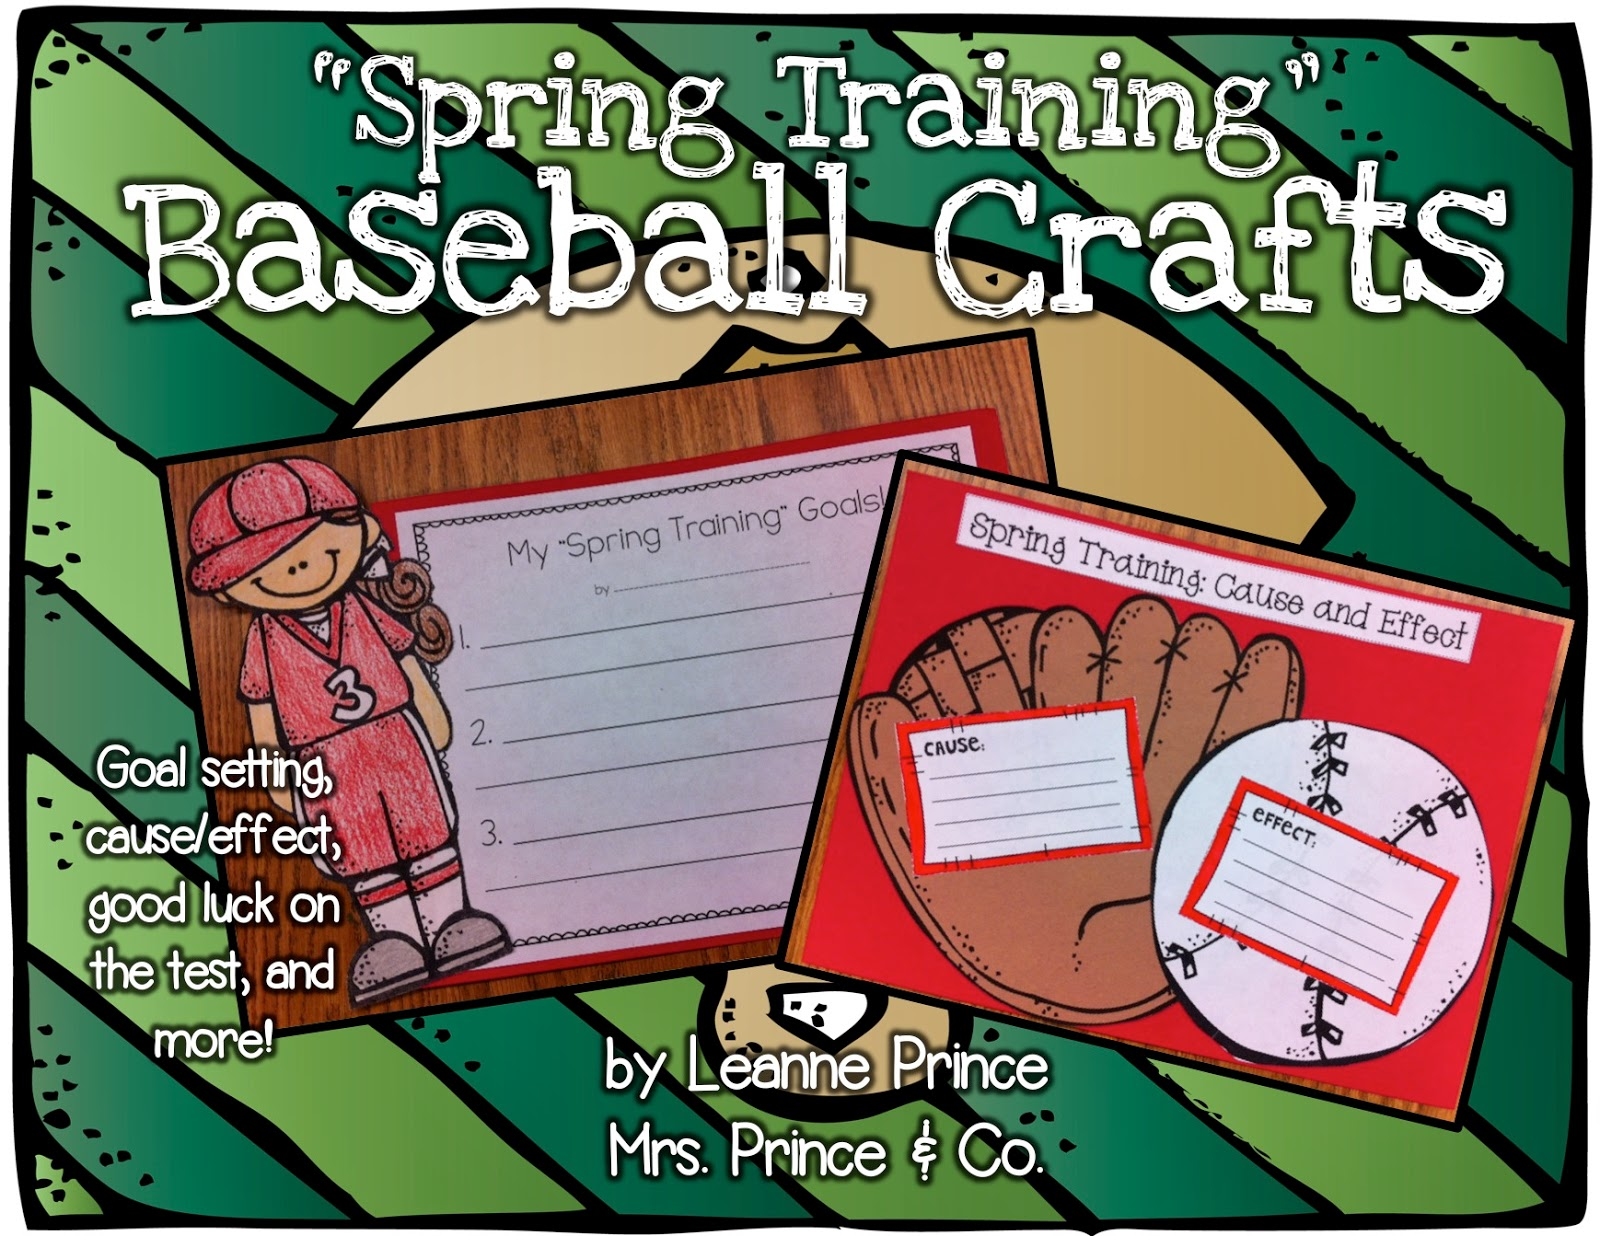 http://www.teacherspayteachers.com/Product/Baseball-Crafts-642547